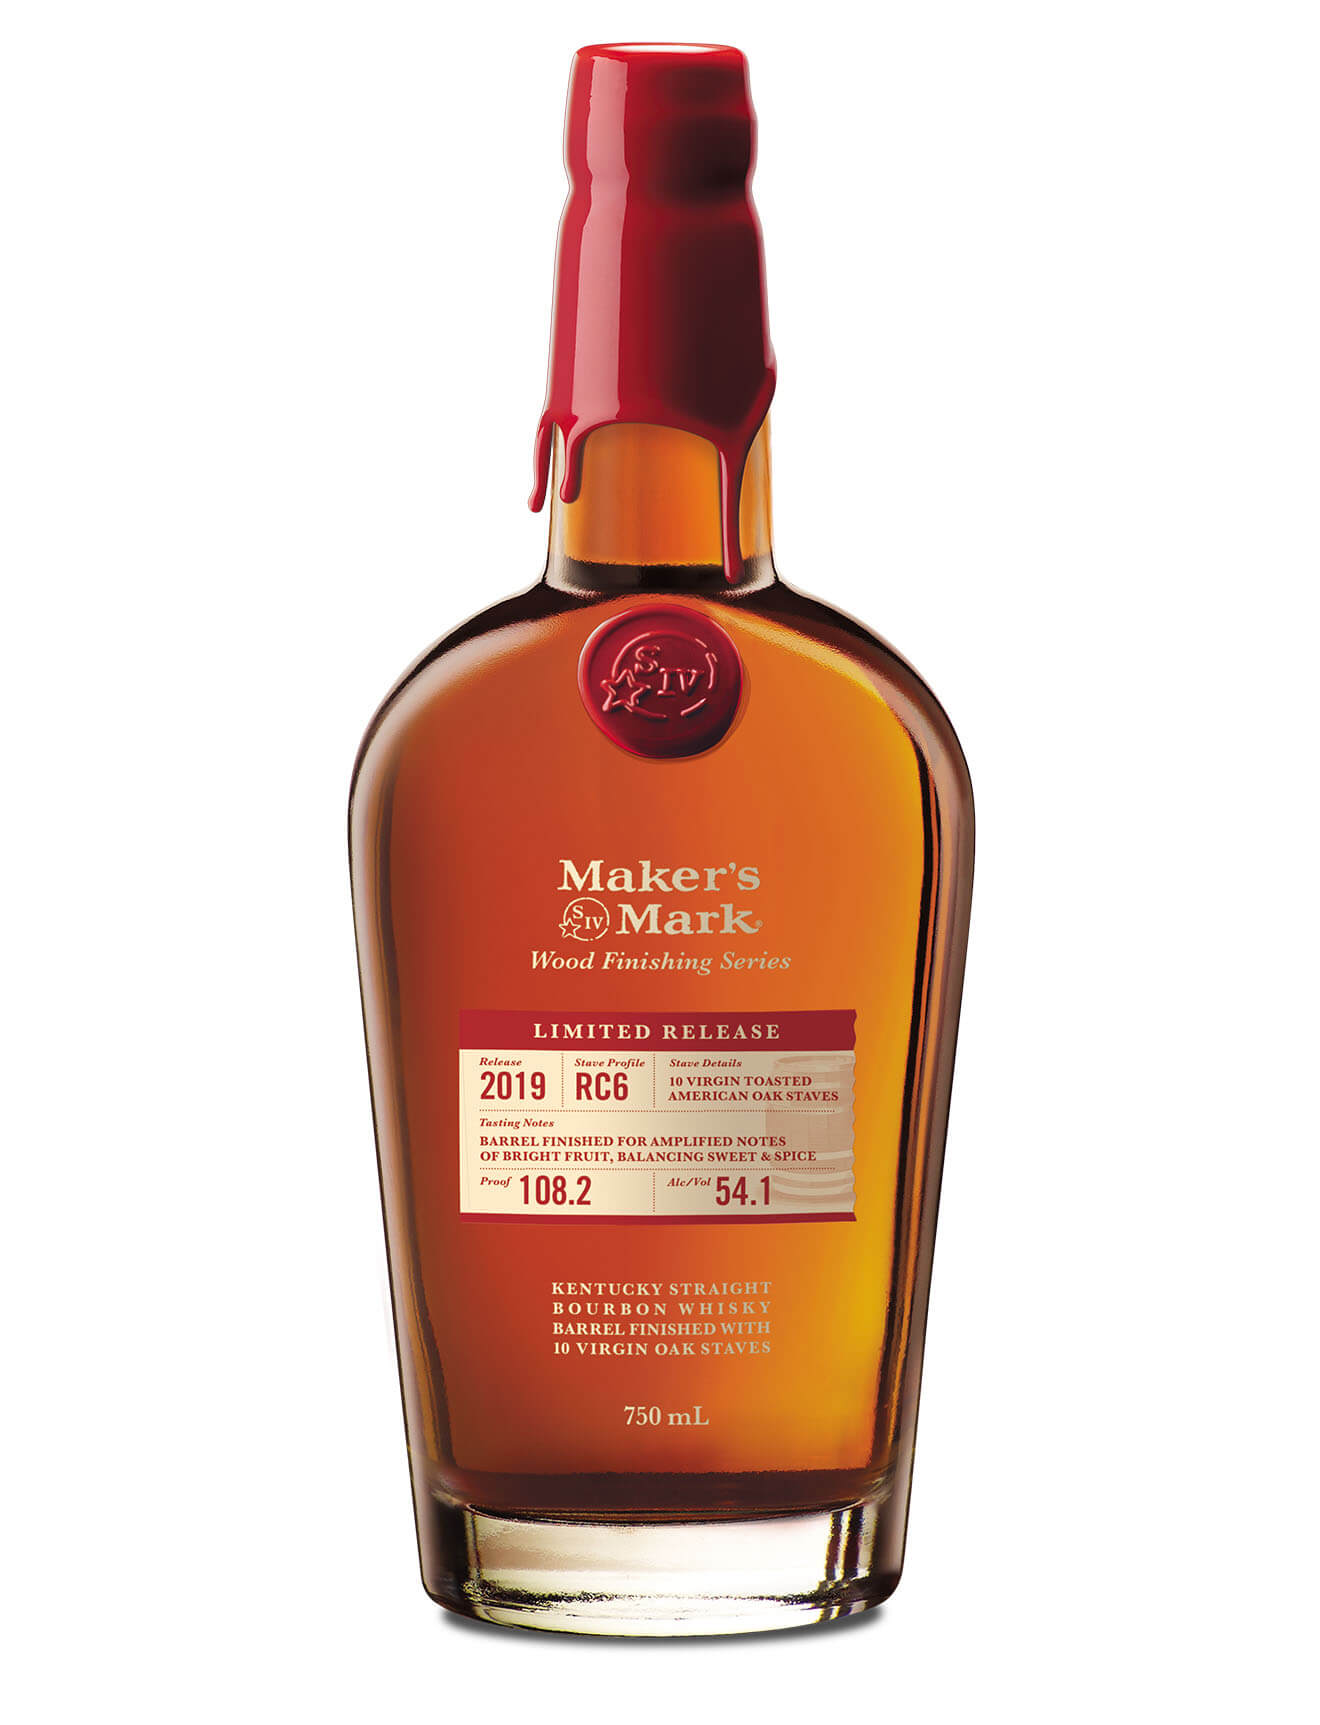 Maker's Mark Wood Finishing Series 2019 Release